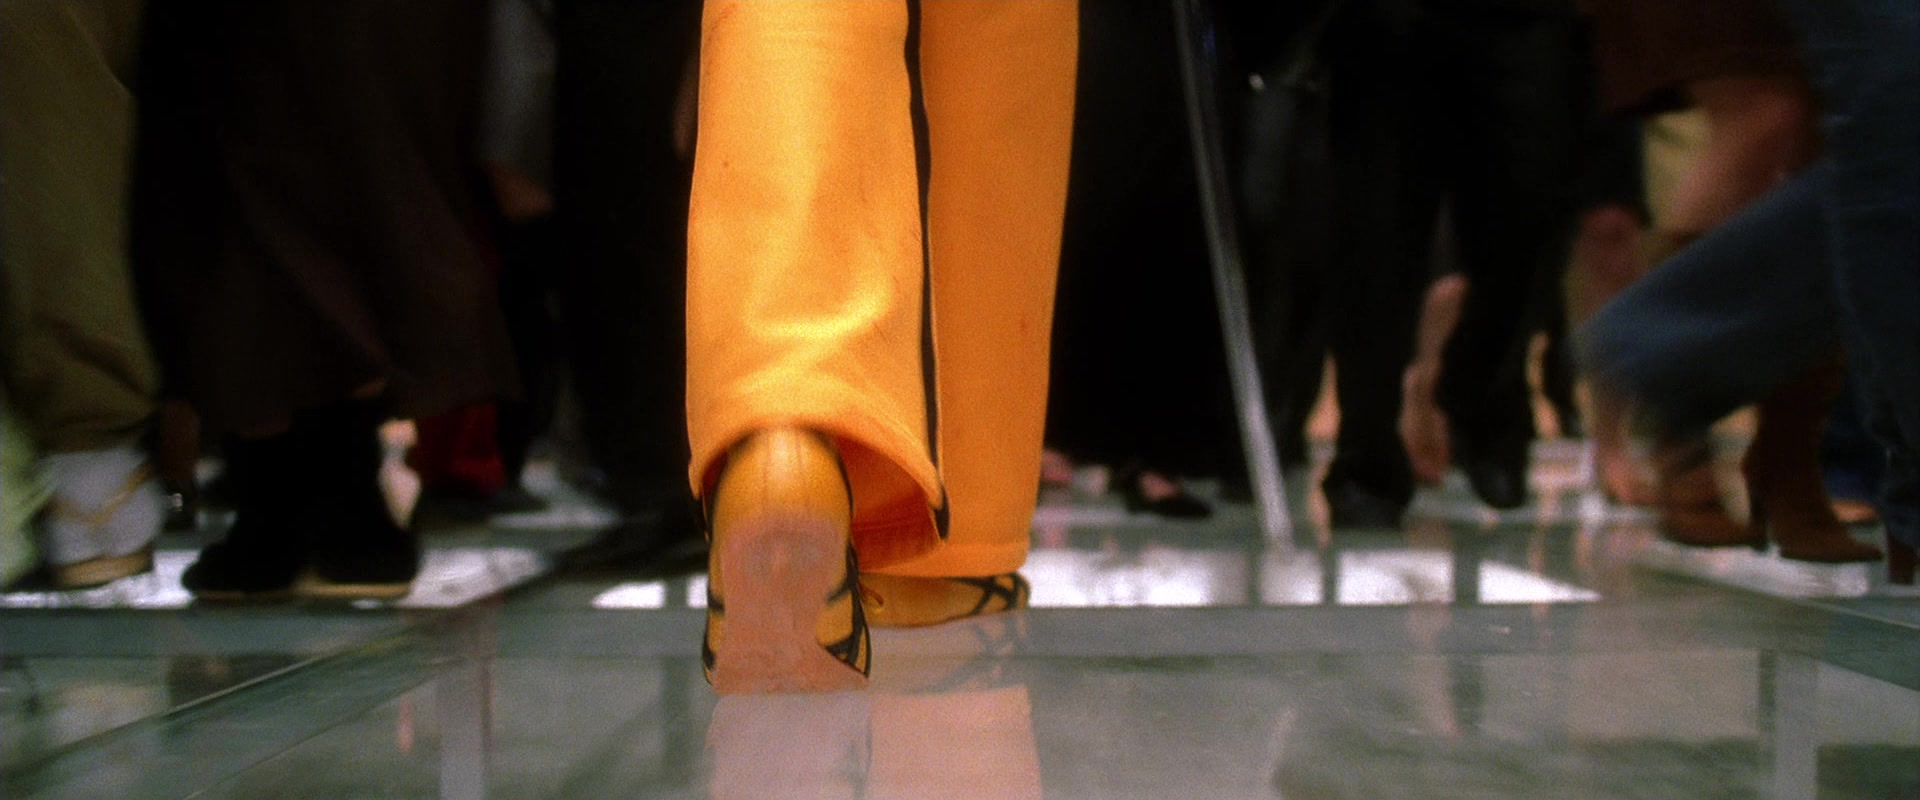 Asics Yellow Shoes Worn by Uma Thurman as The Bride in Kill